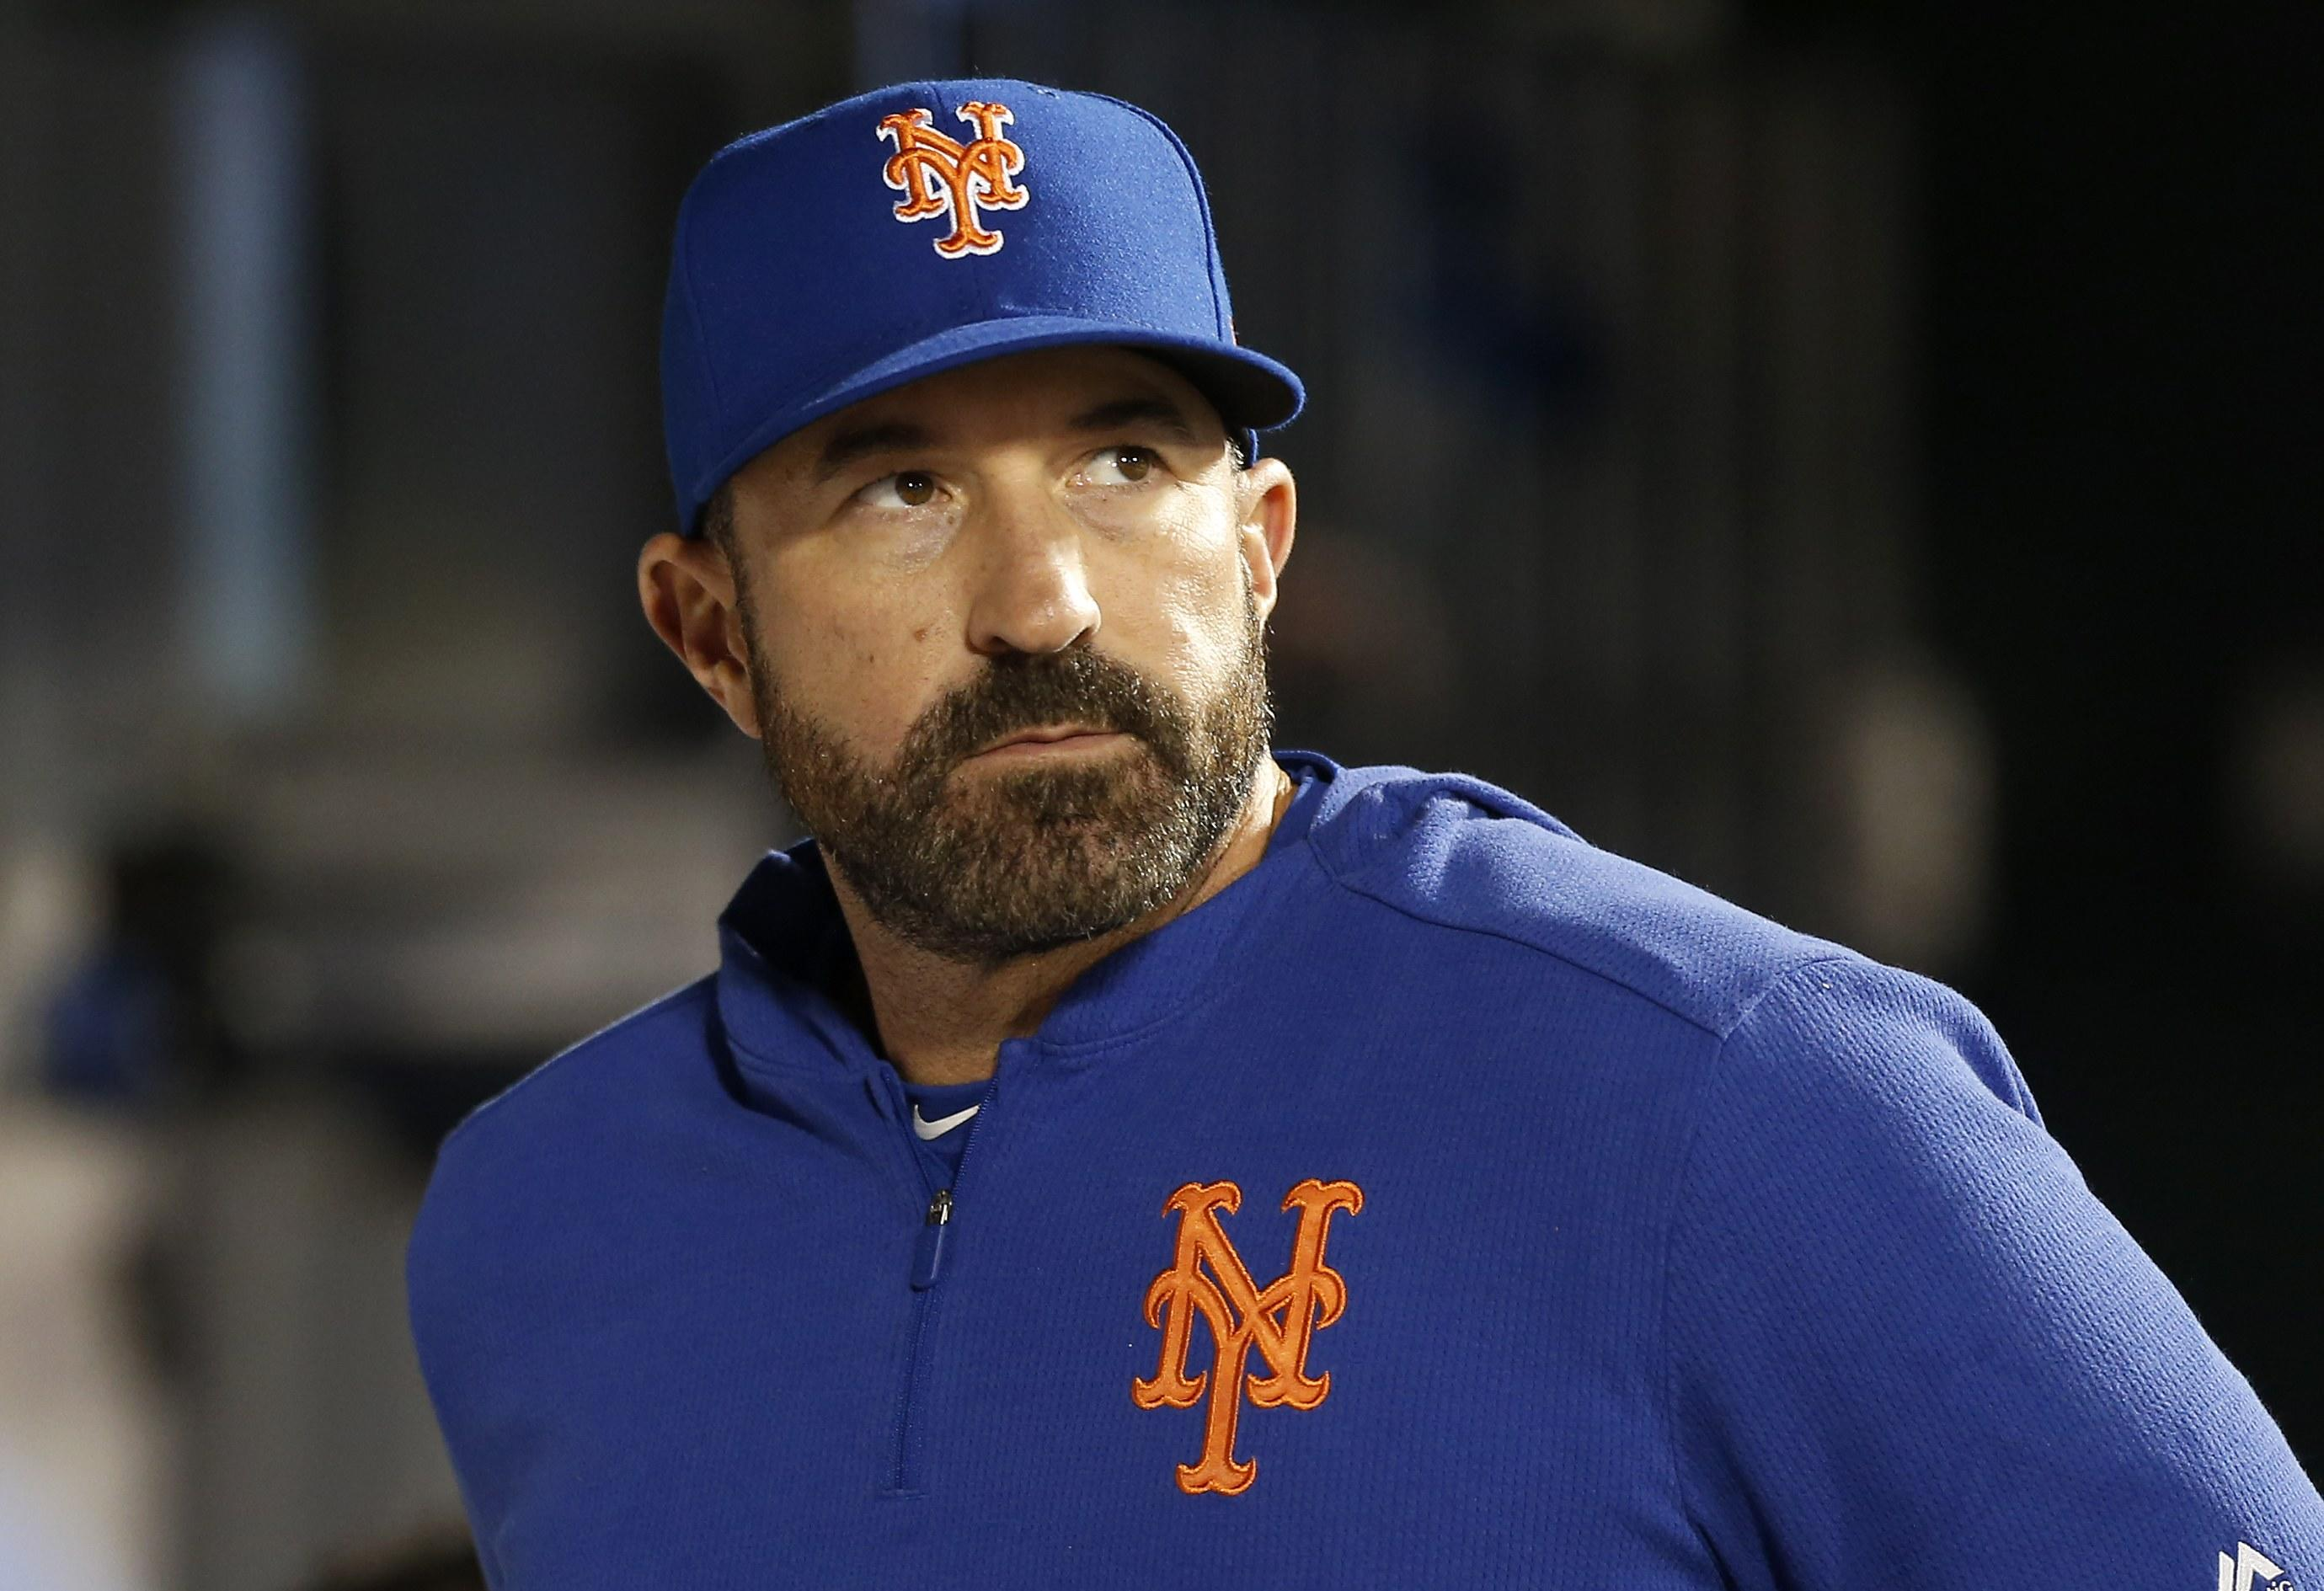 Mets manager Mickey Callaway reaches new low, asks radio host if star player should participate in Home Run Derby